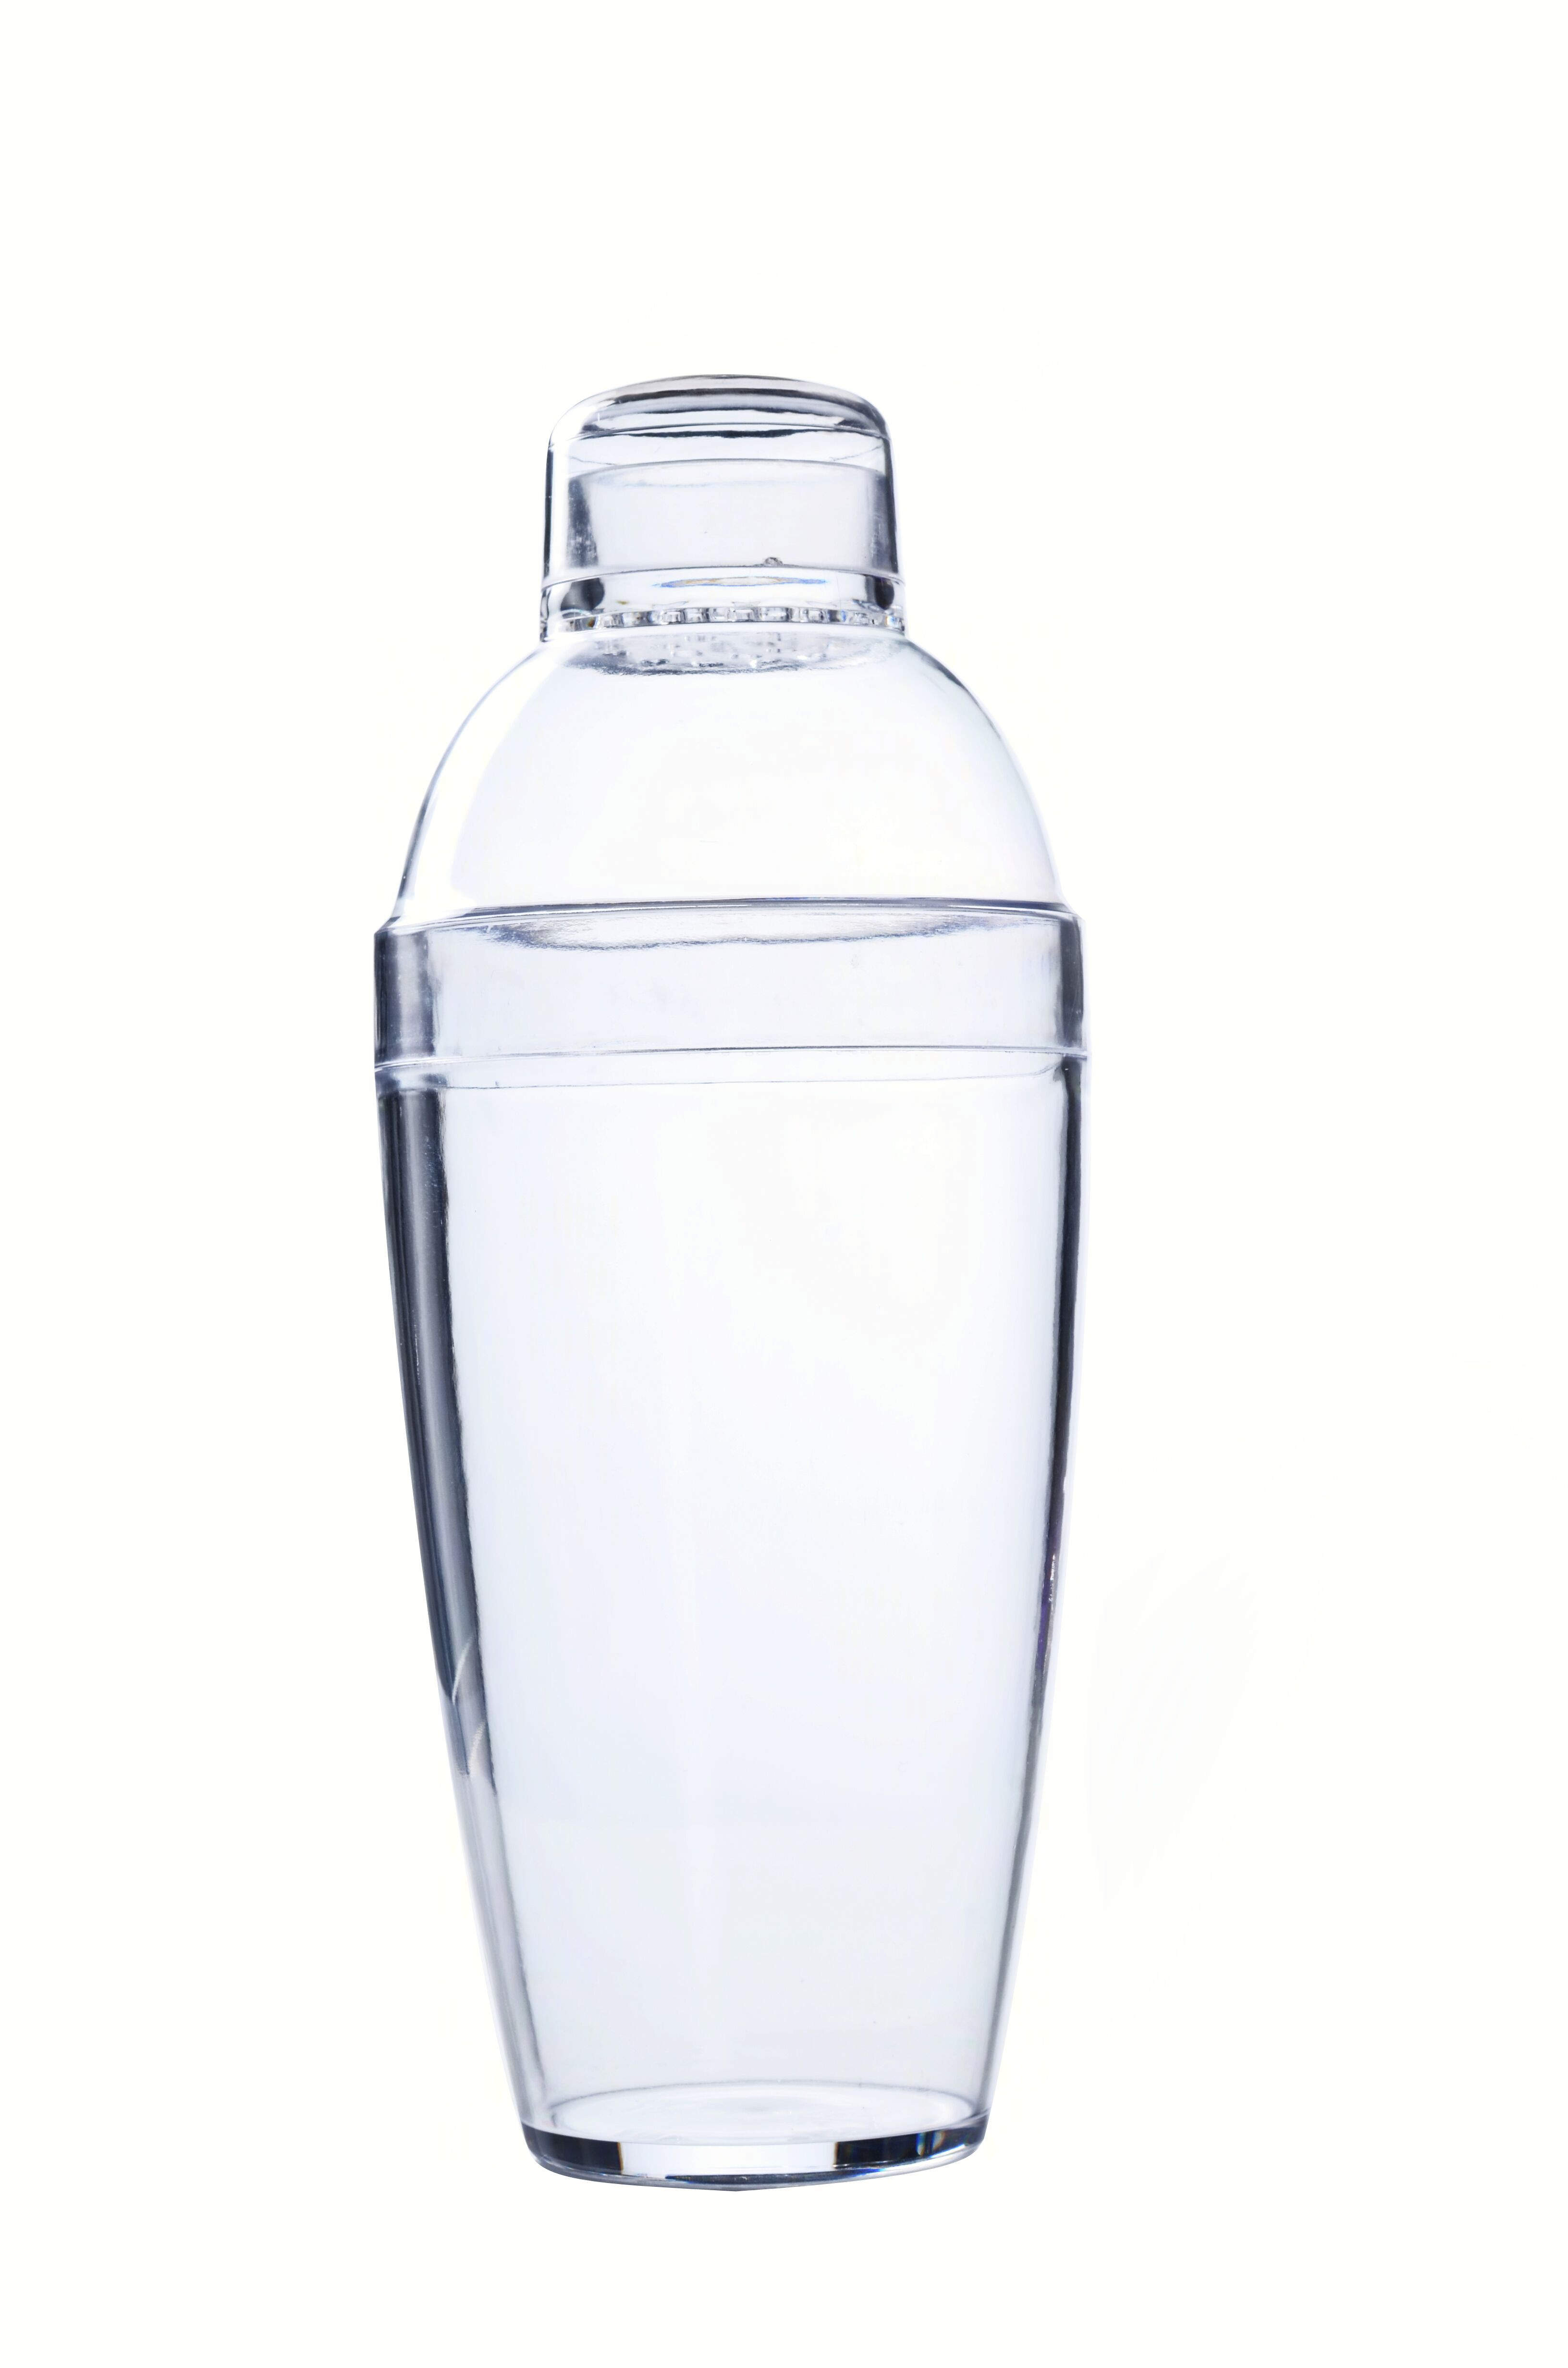 14 oz Cocktail Shaker Clear